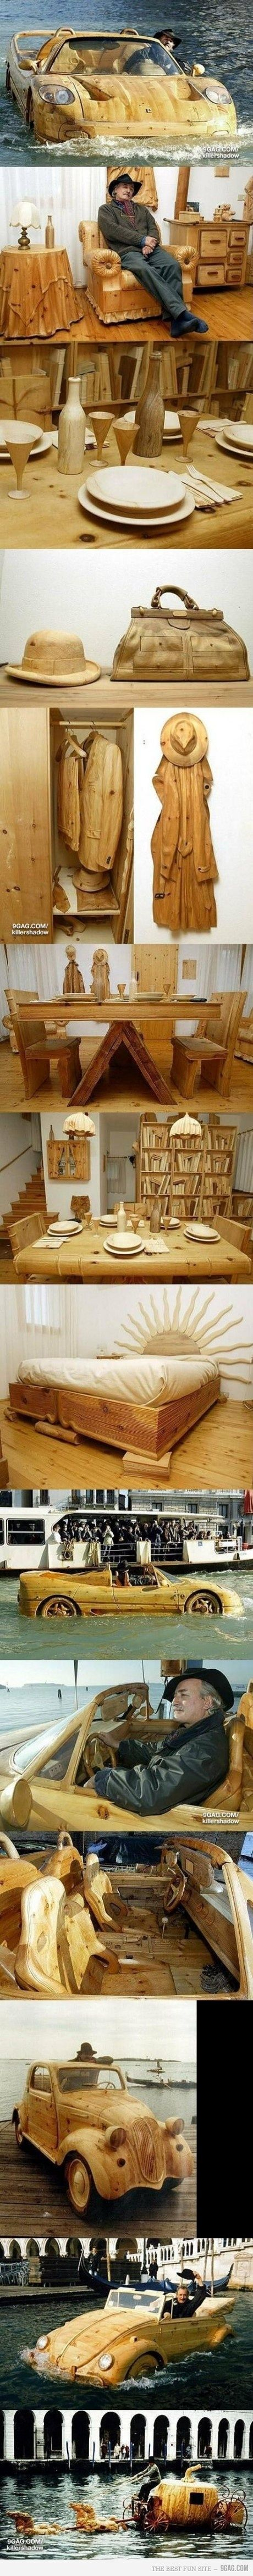 wood art from cars to driveable wooden boats to furniture